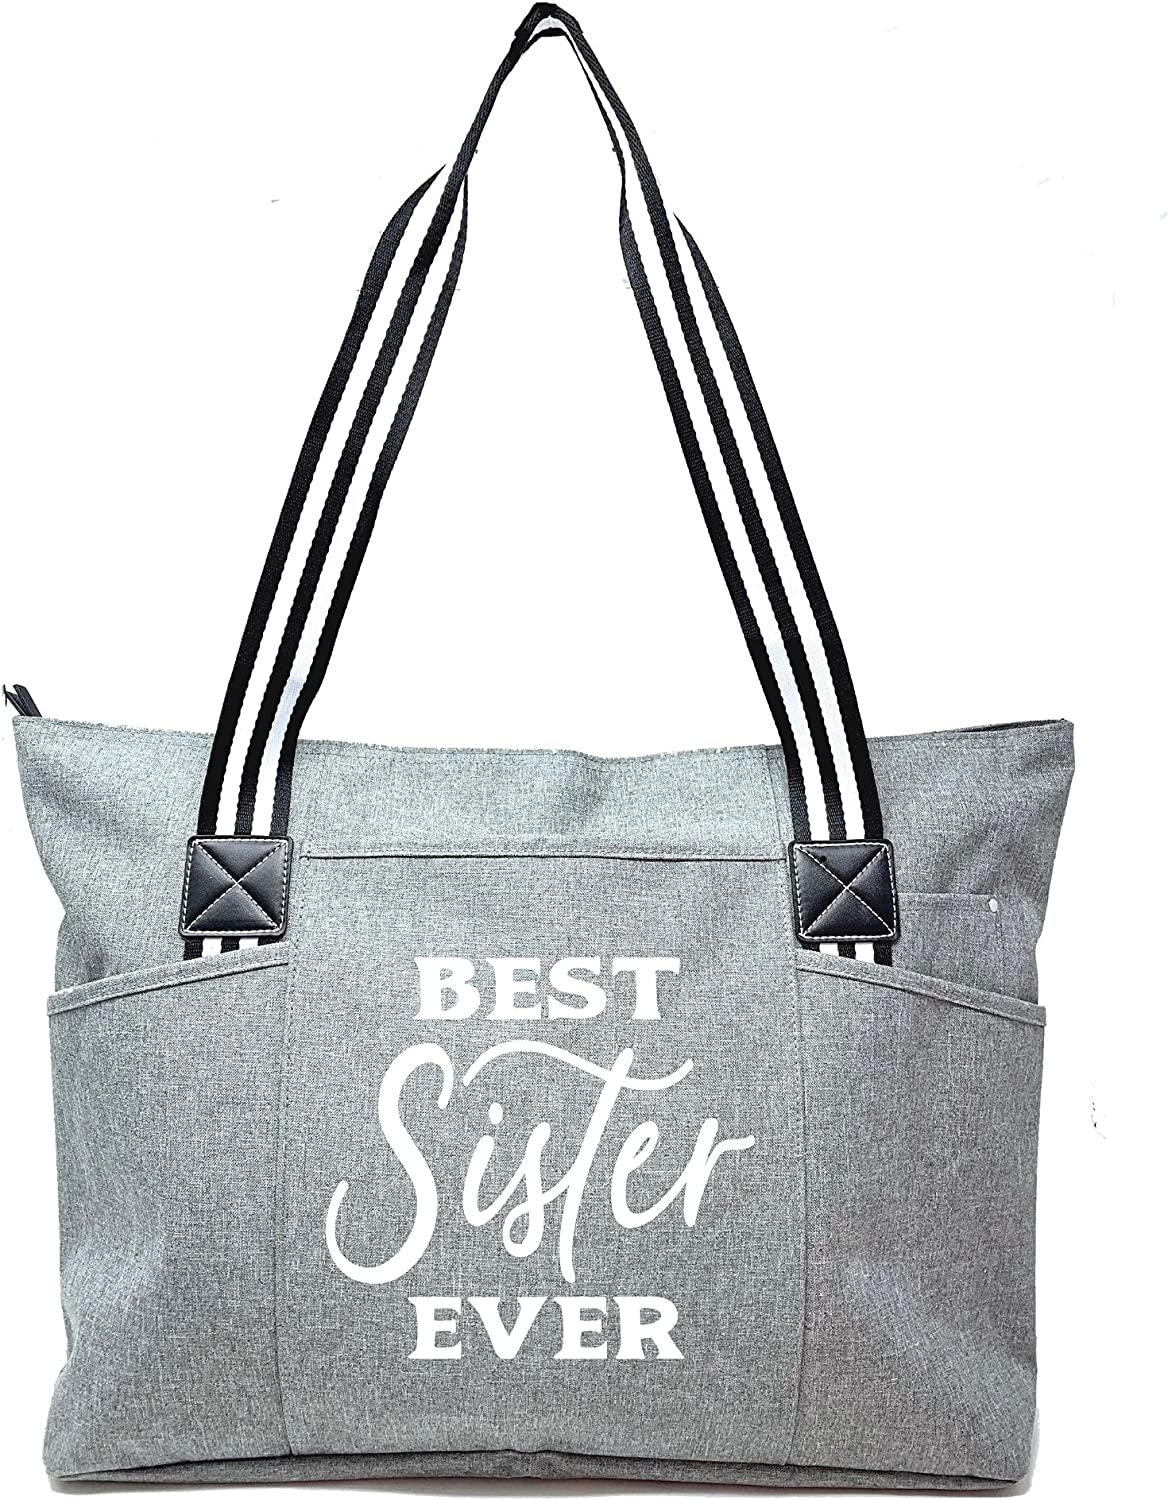 Gifts Miami Mall for Sister - Cute Zippered fo with Pockets Regular store Bag Canvas Tote